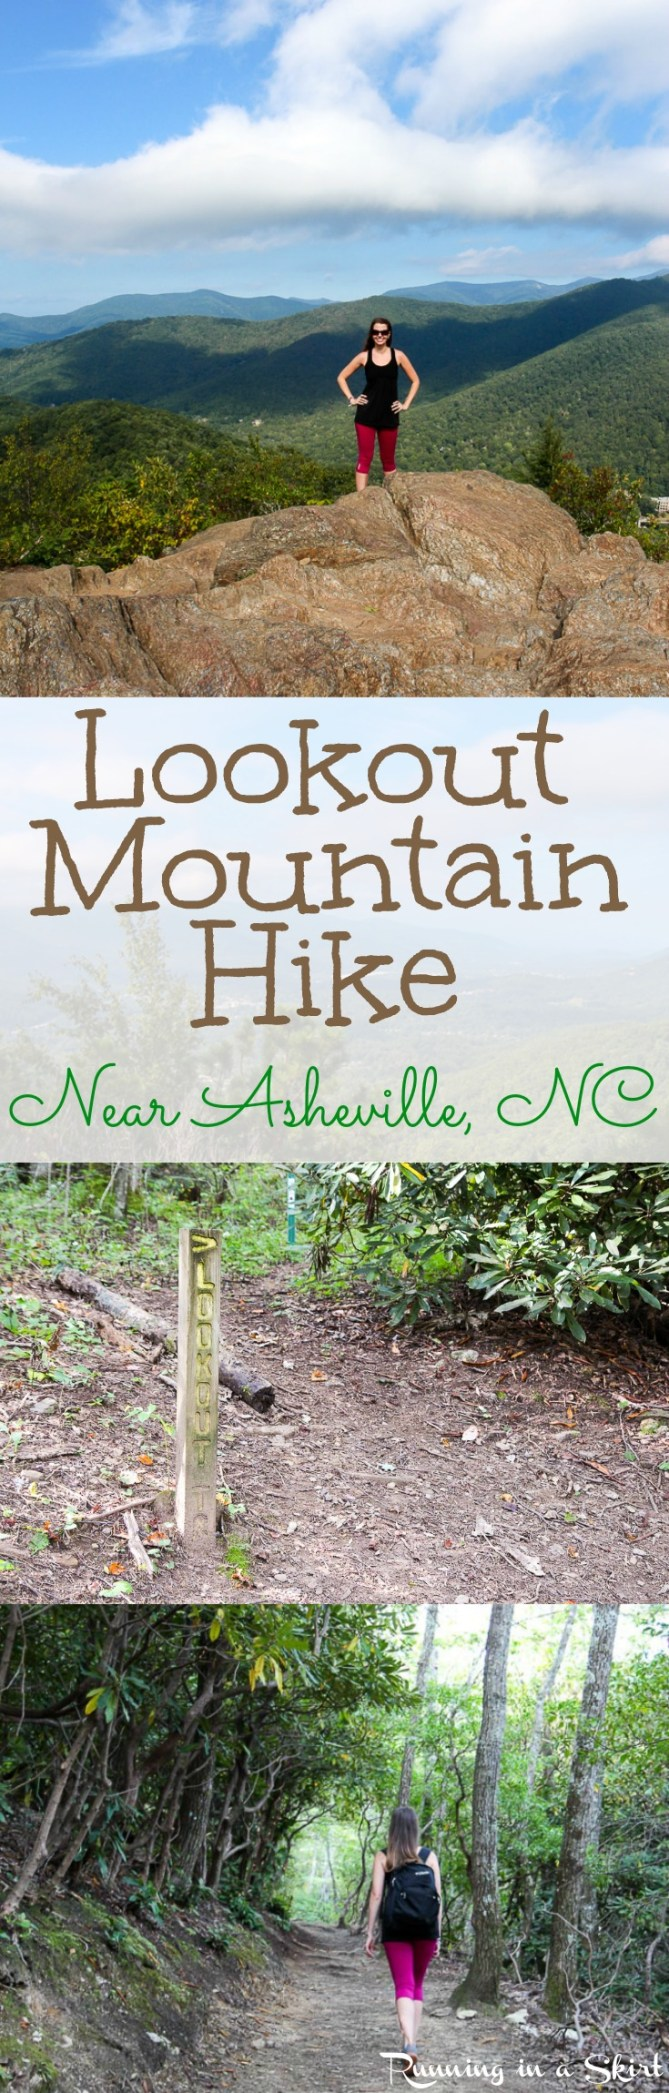 lookout-mountain-montreat-hiking-near-asheville-nc